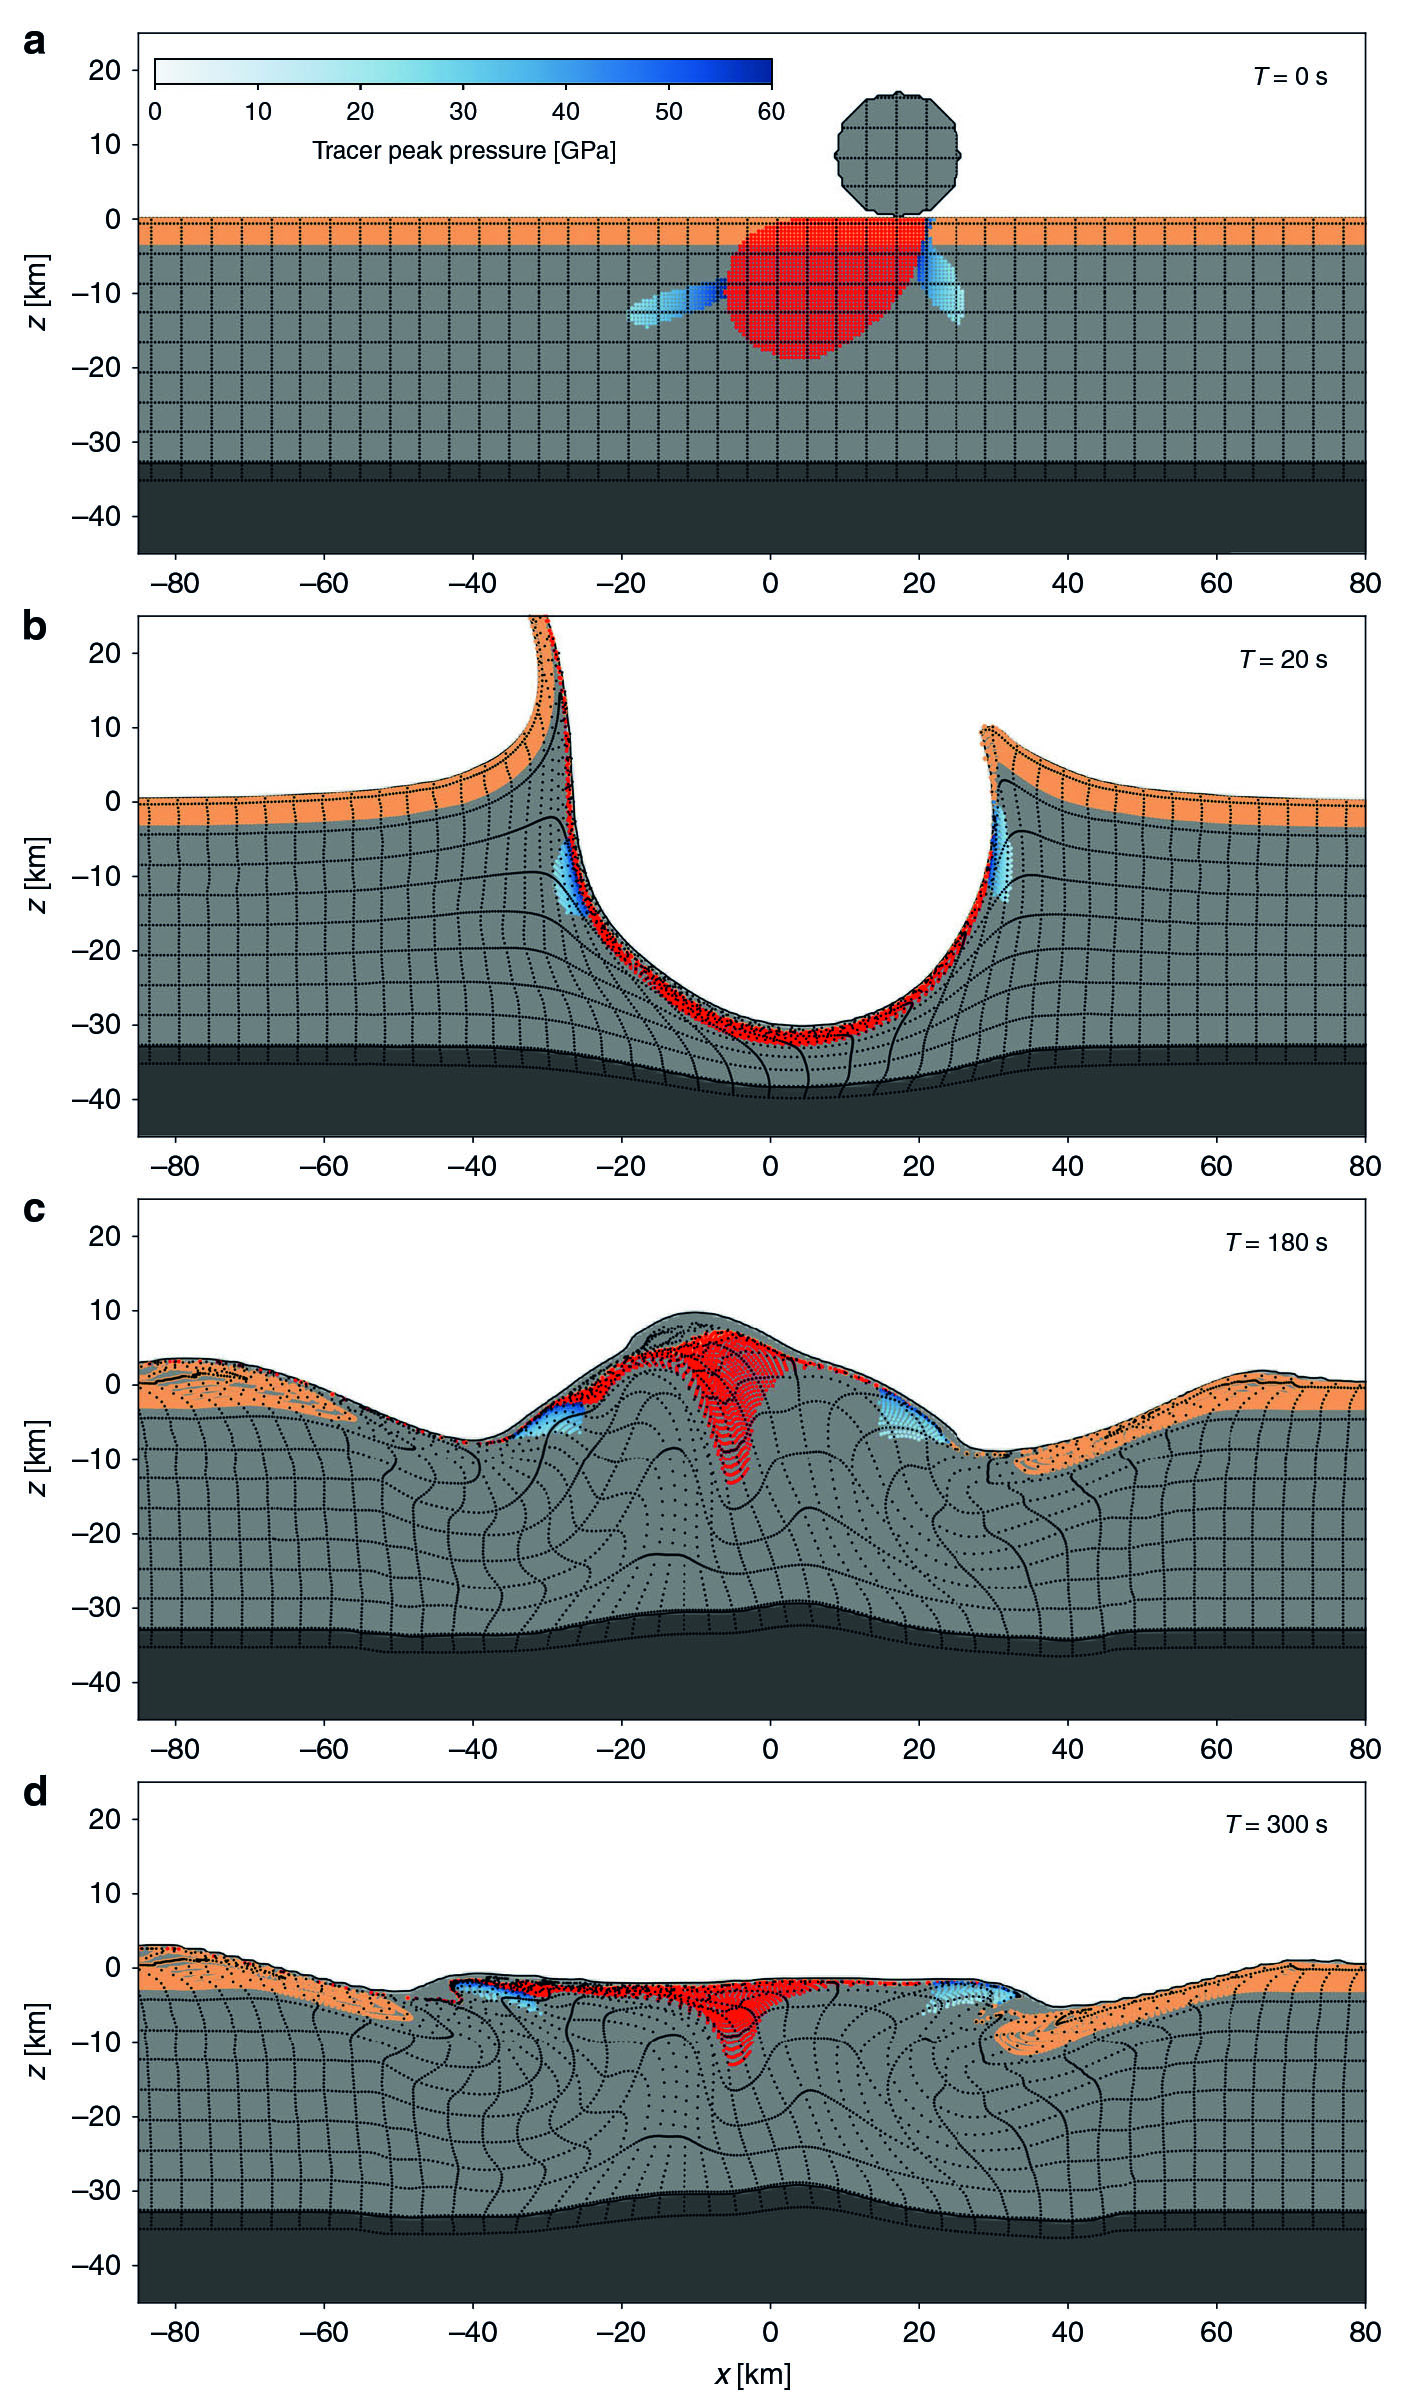 A simulated impact at 60 degrees, traveling right to left. Notice that the subtle lumps on either side of the crater floor (the peak ring) are offset from the center (0). The dark gray layer at the bottom represents the mantle, and the high point in the last frame is offset in the other direction.